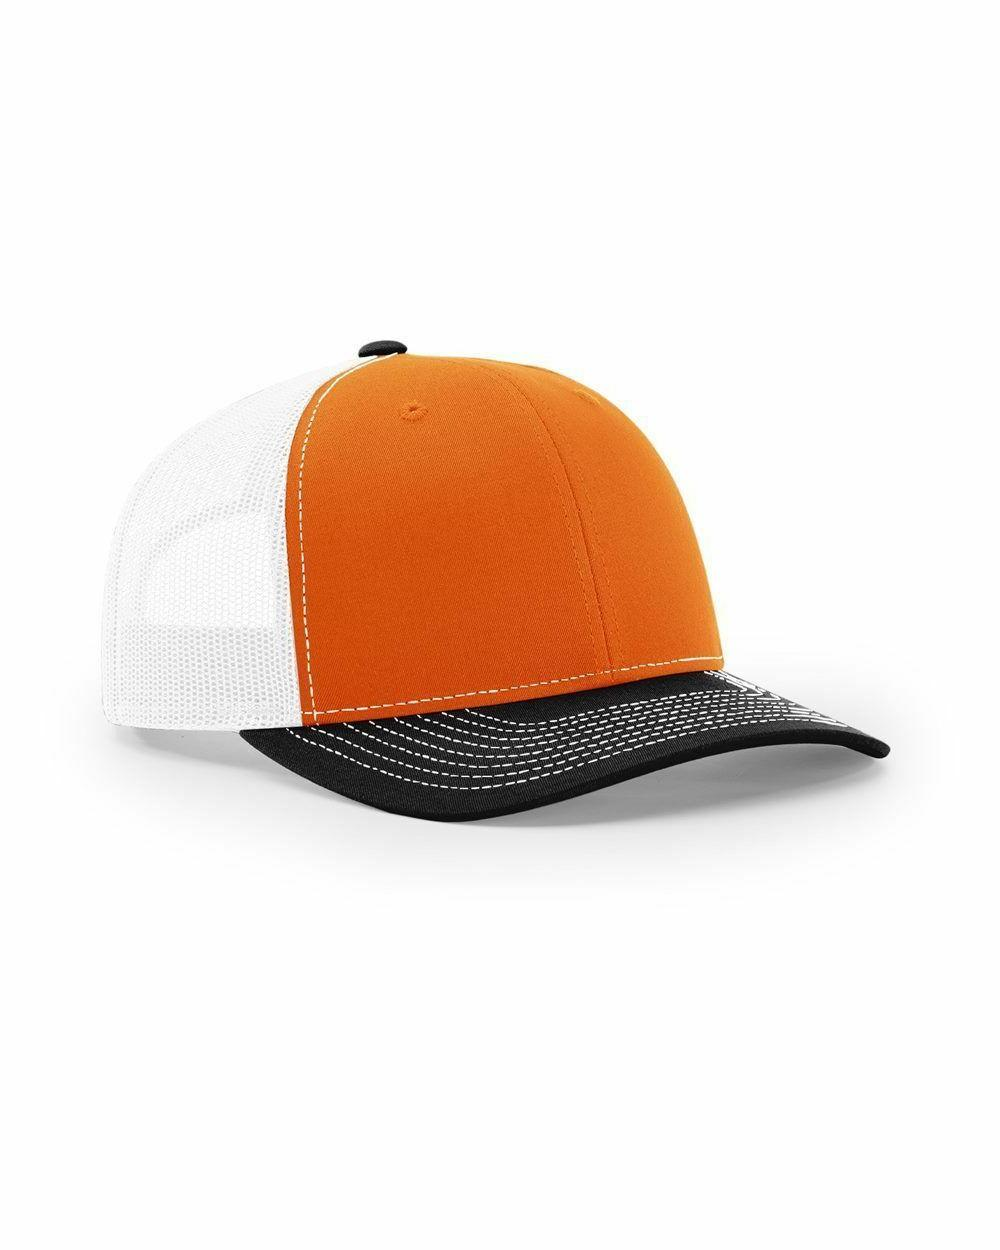 2236ab97f75b2 Richardson Trucker Ball Cap Mesh back Hat Snapback